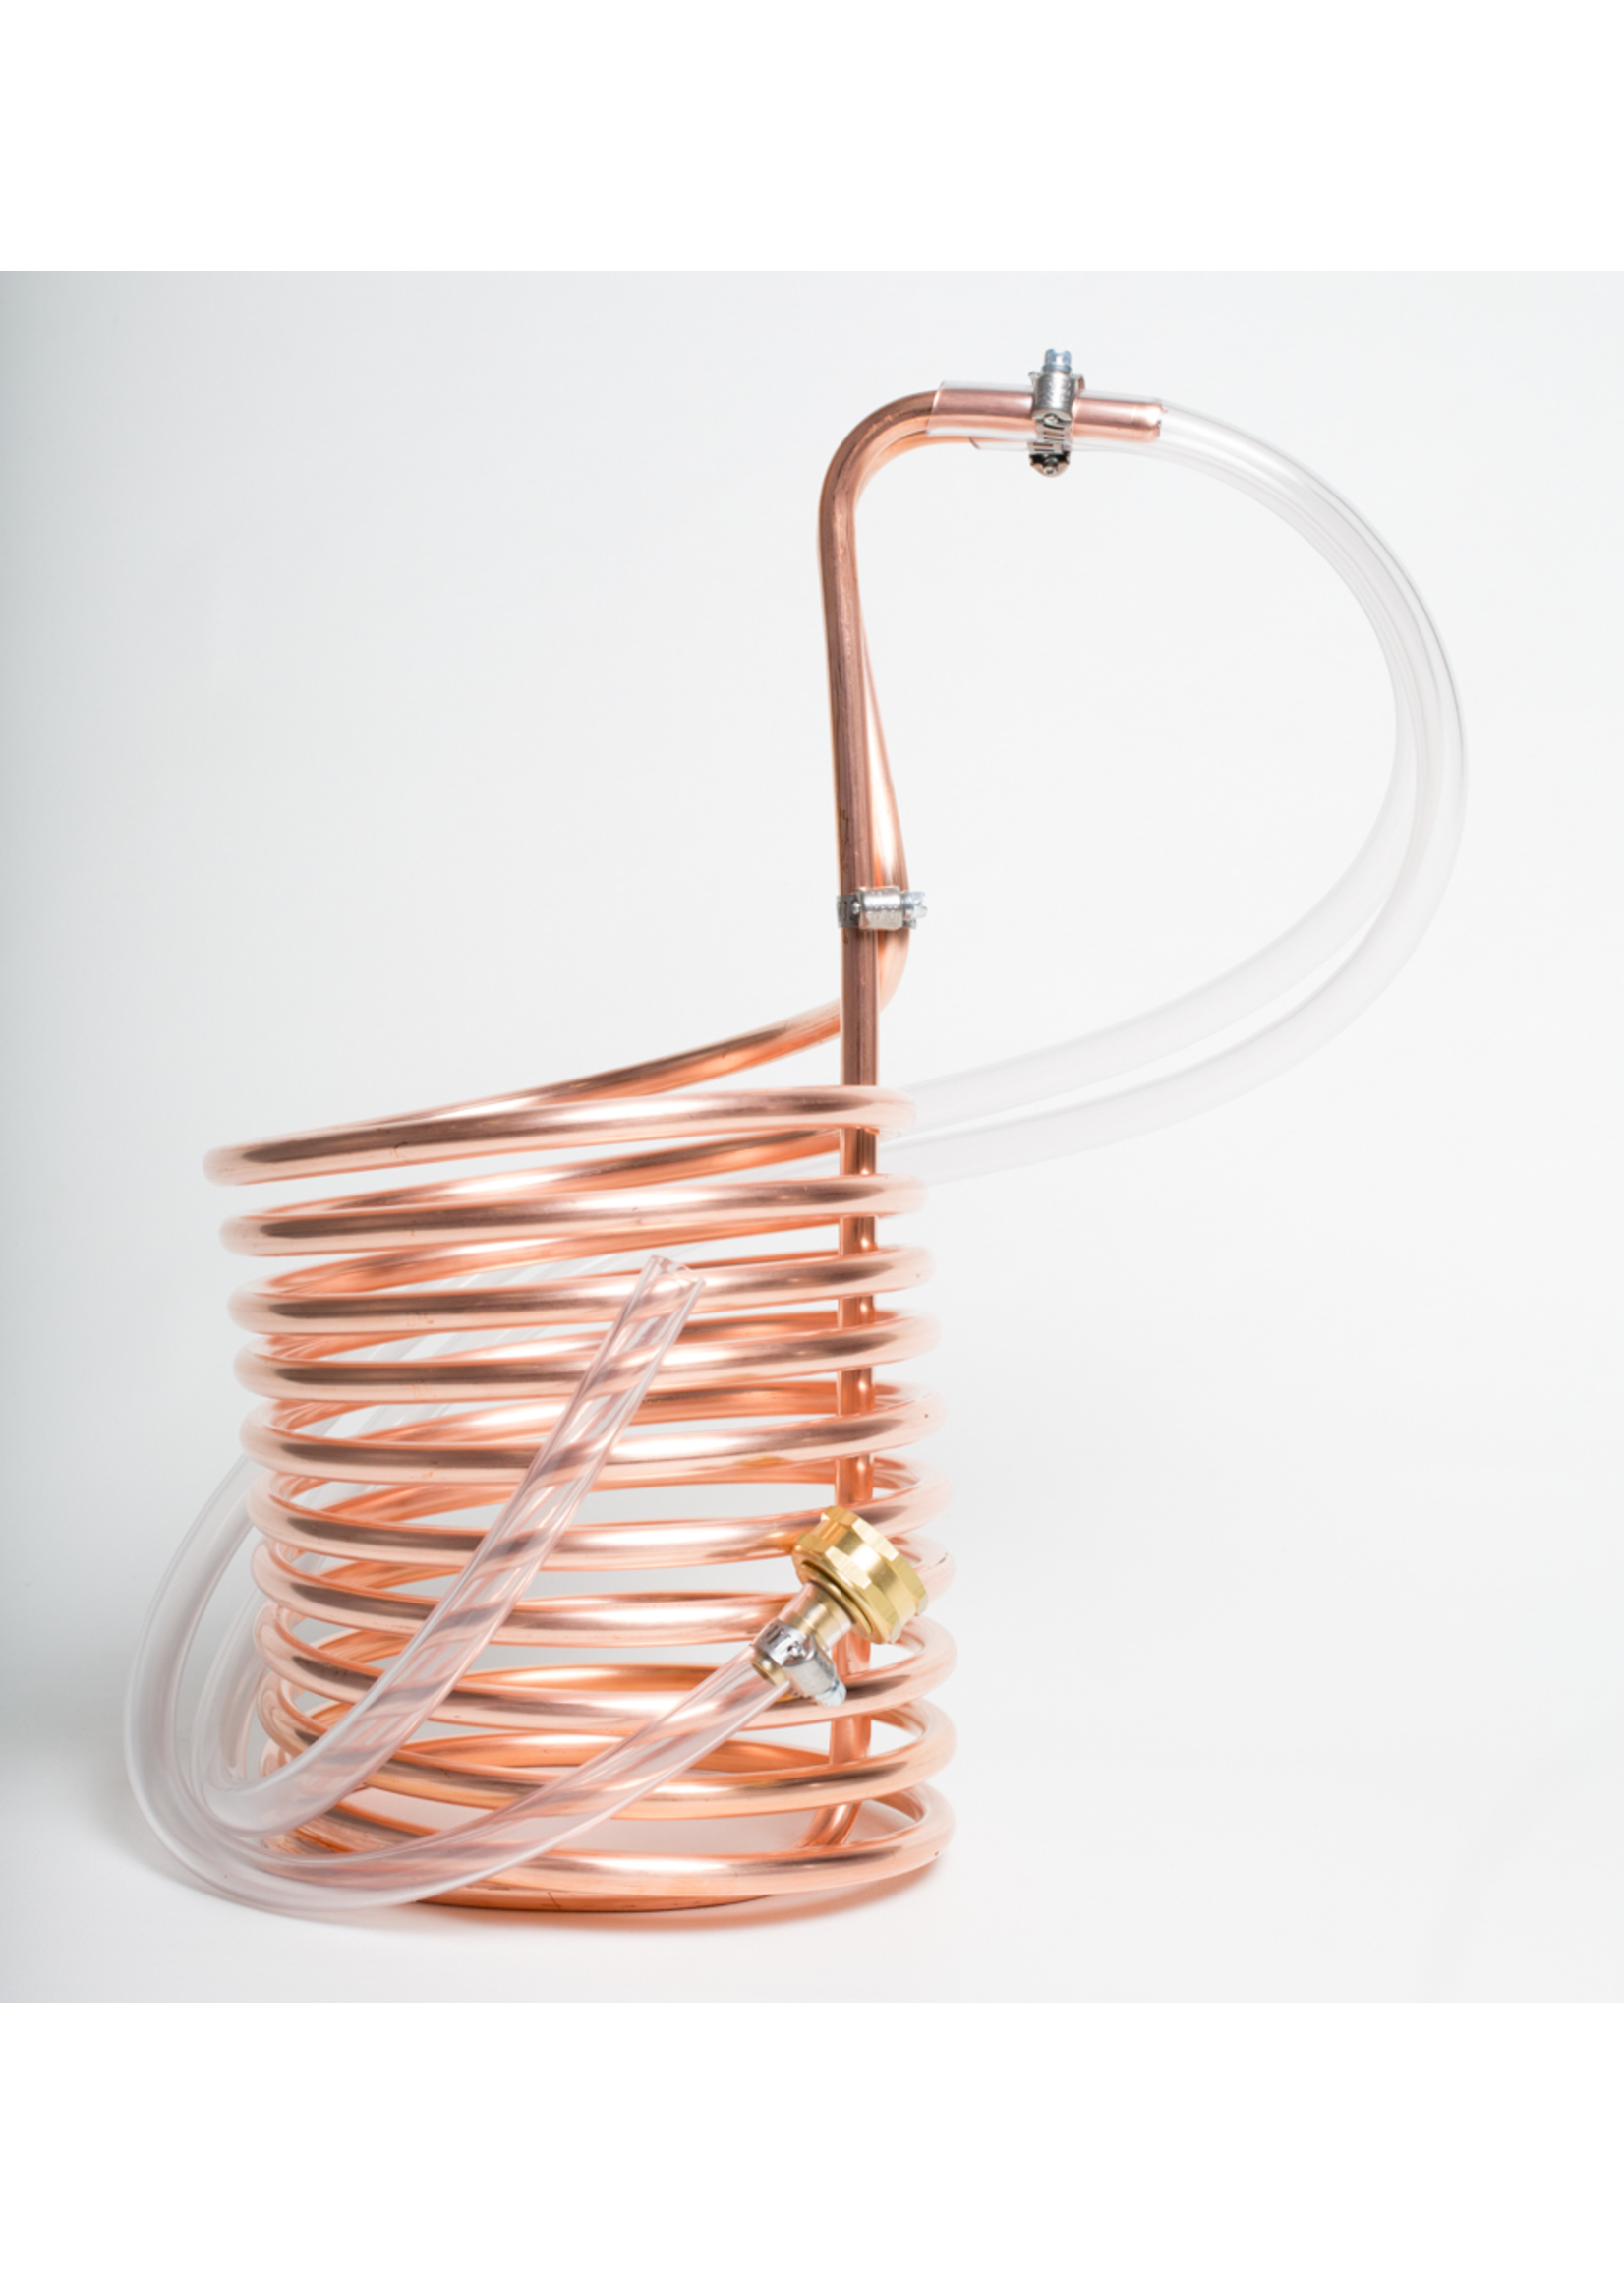 Brewing Immersion Wort Chiller (Brewers Best) - 20' Length, Copper